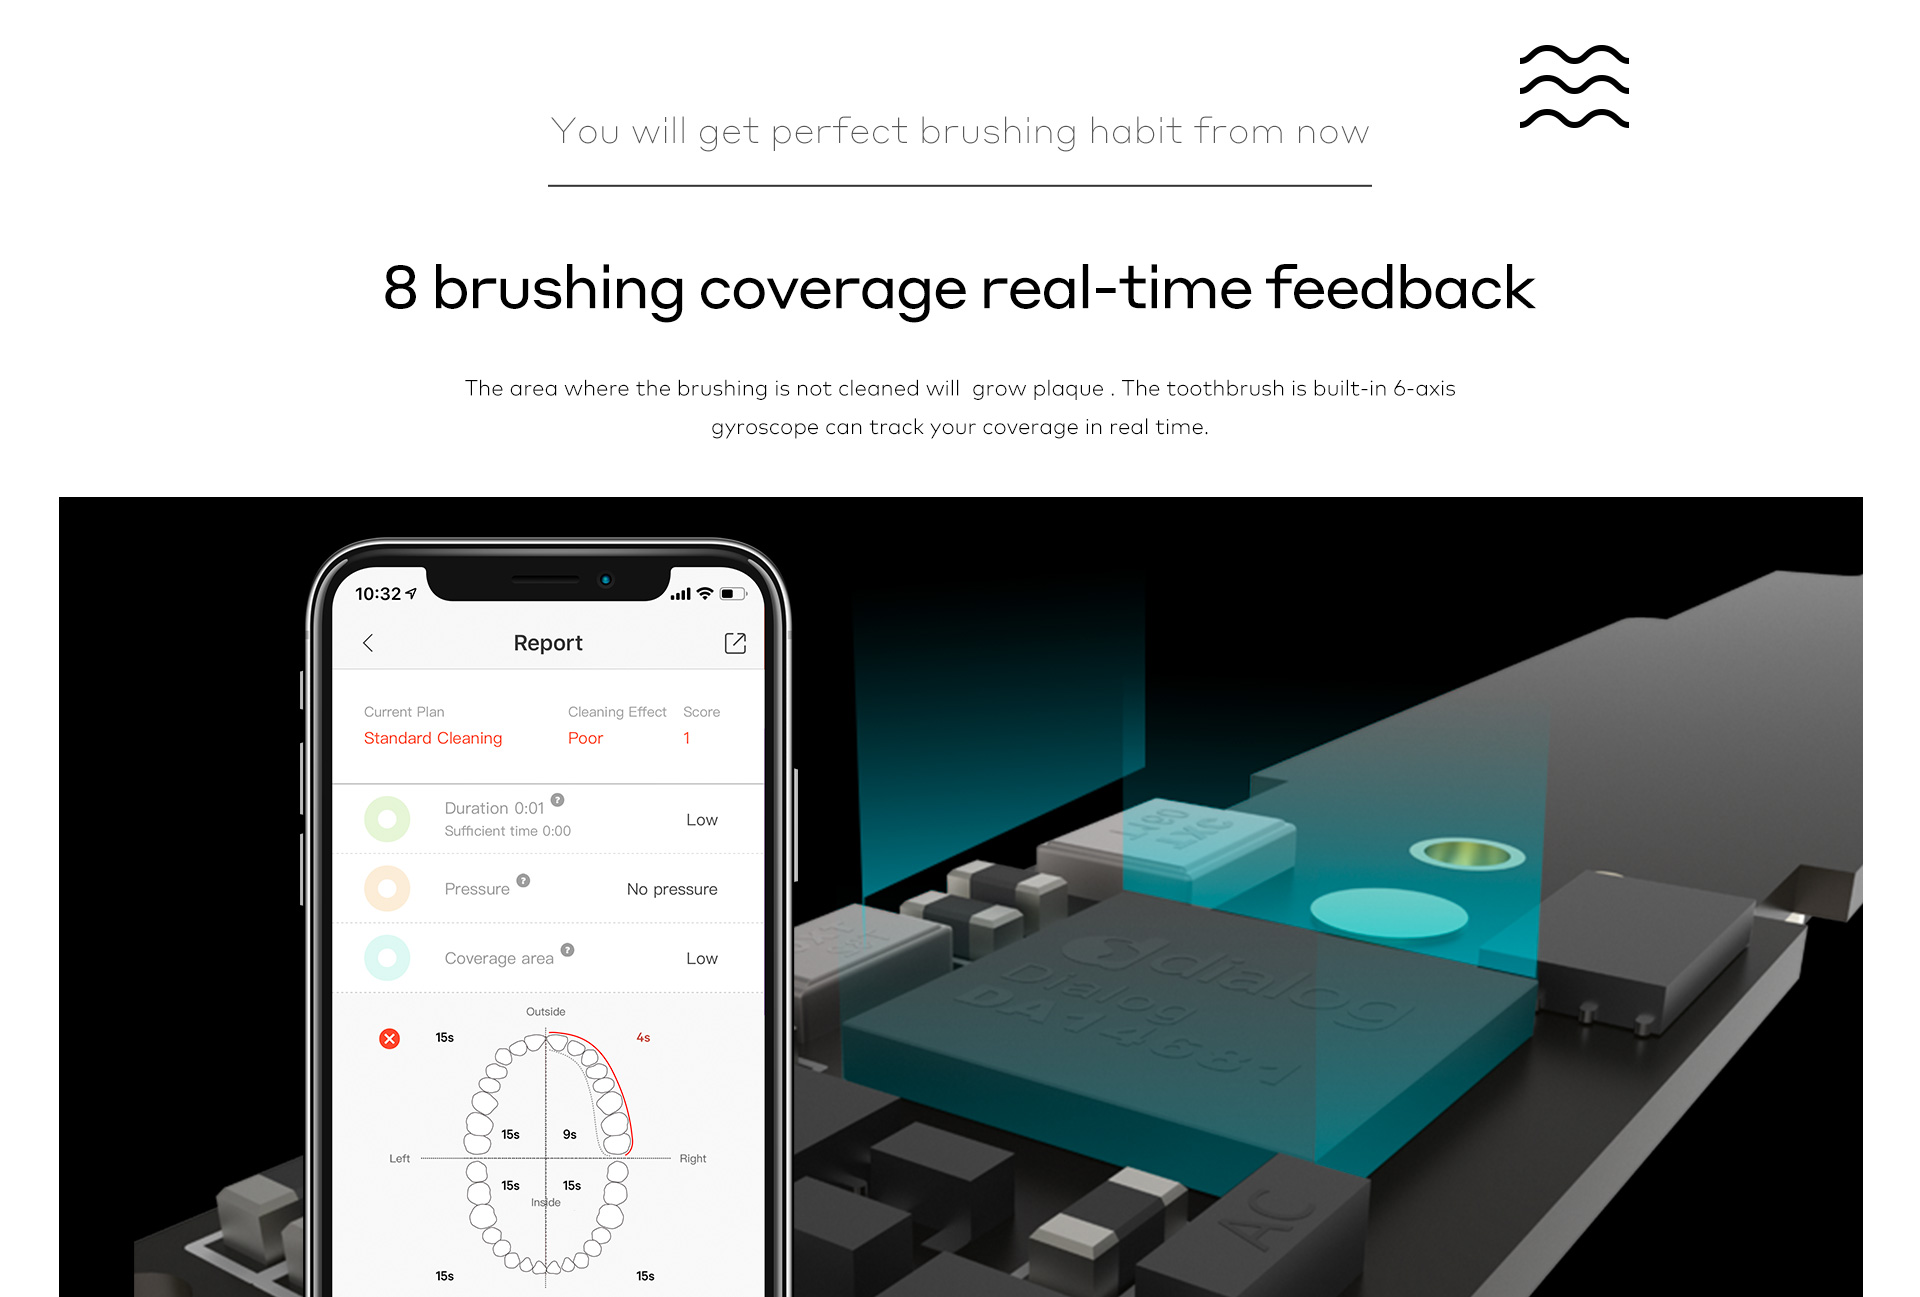 8 brushing coverage real-time feedback